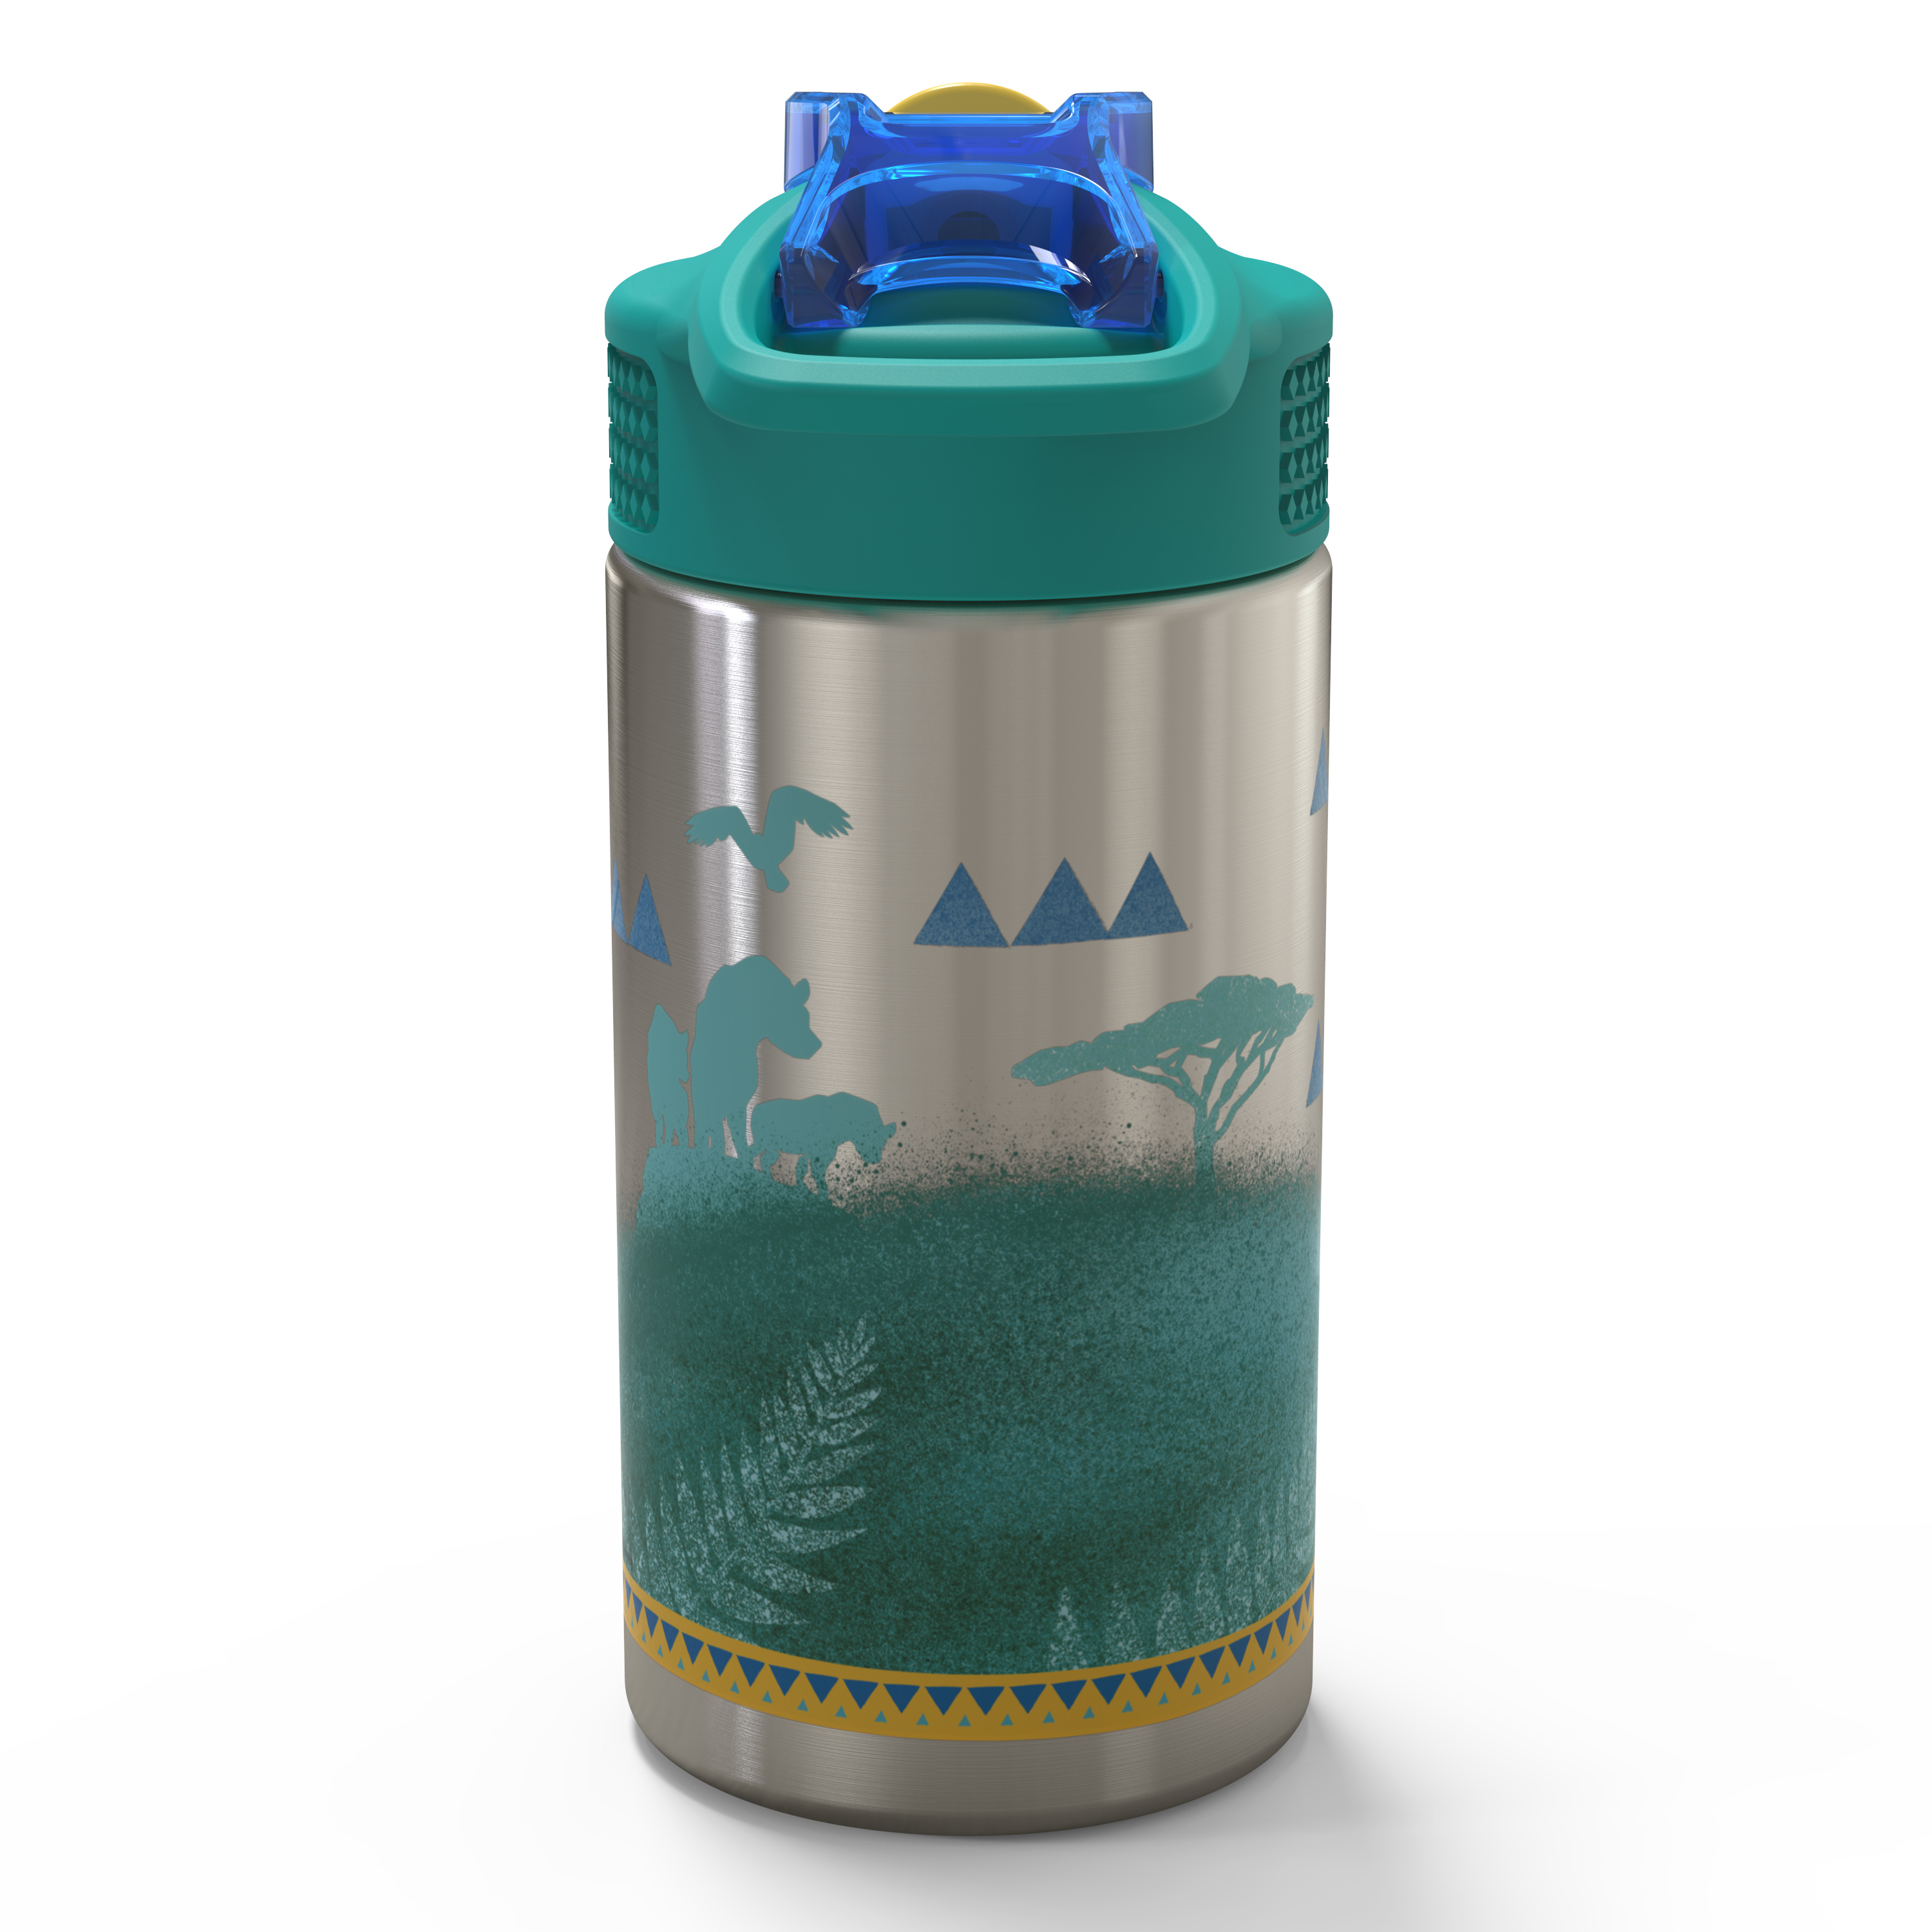 Lion King 15.5 ounce Water Bottle, Simba & Friends slideshow image 3